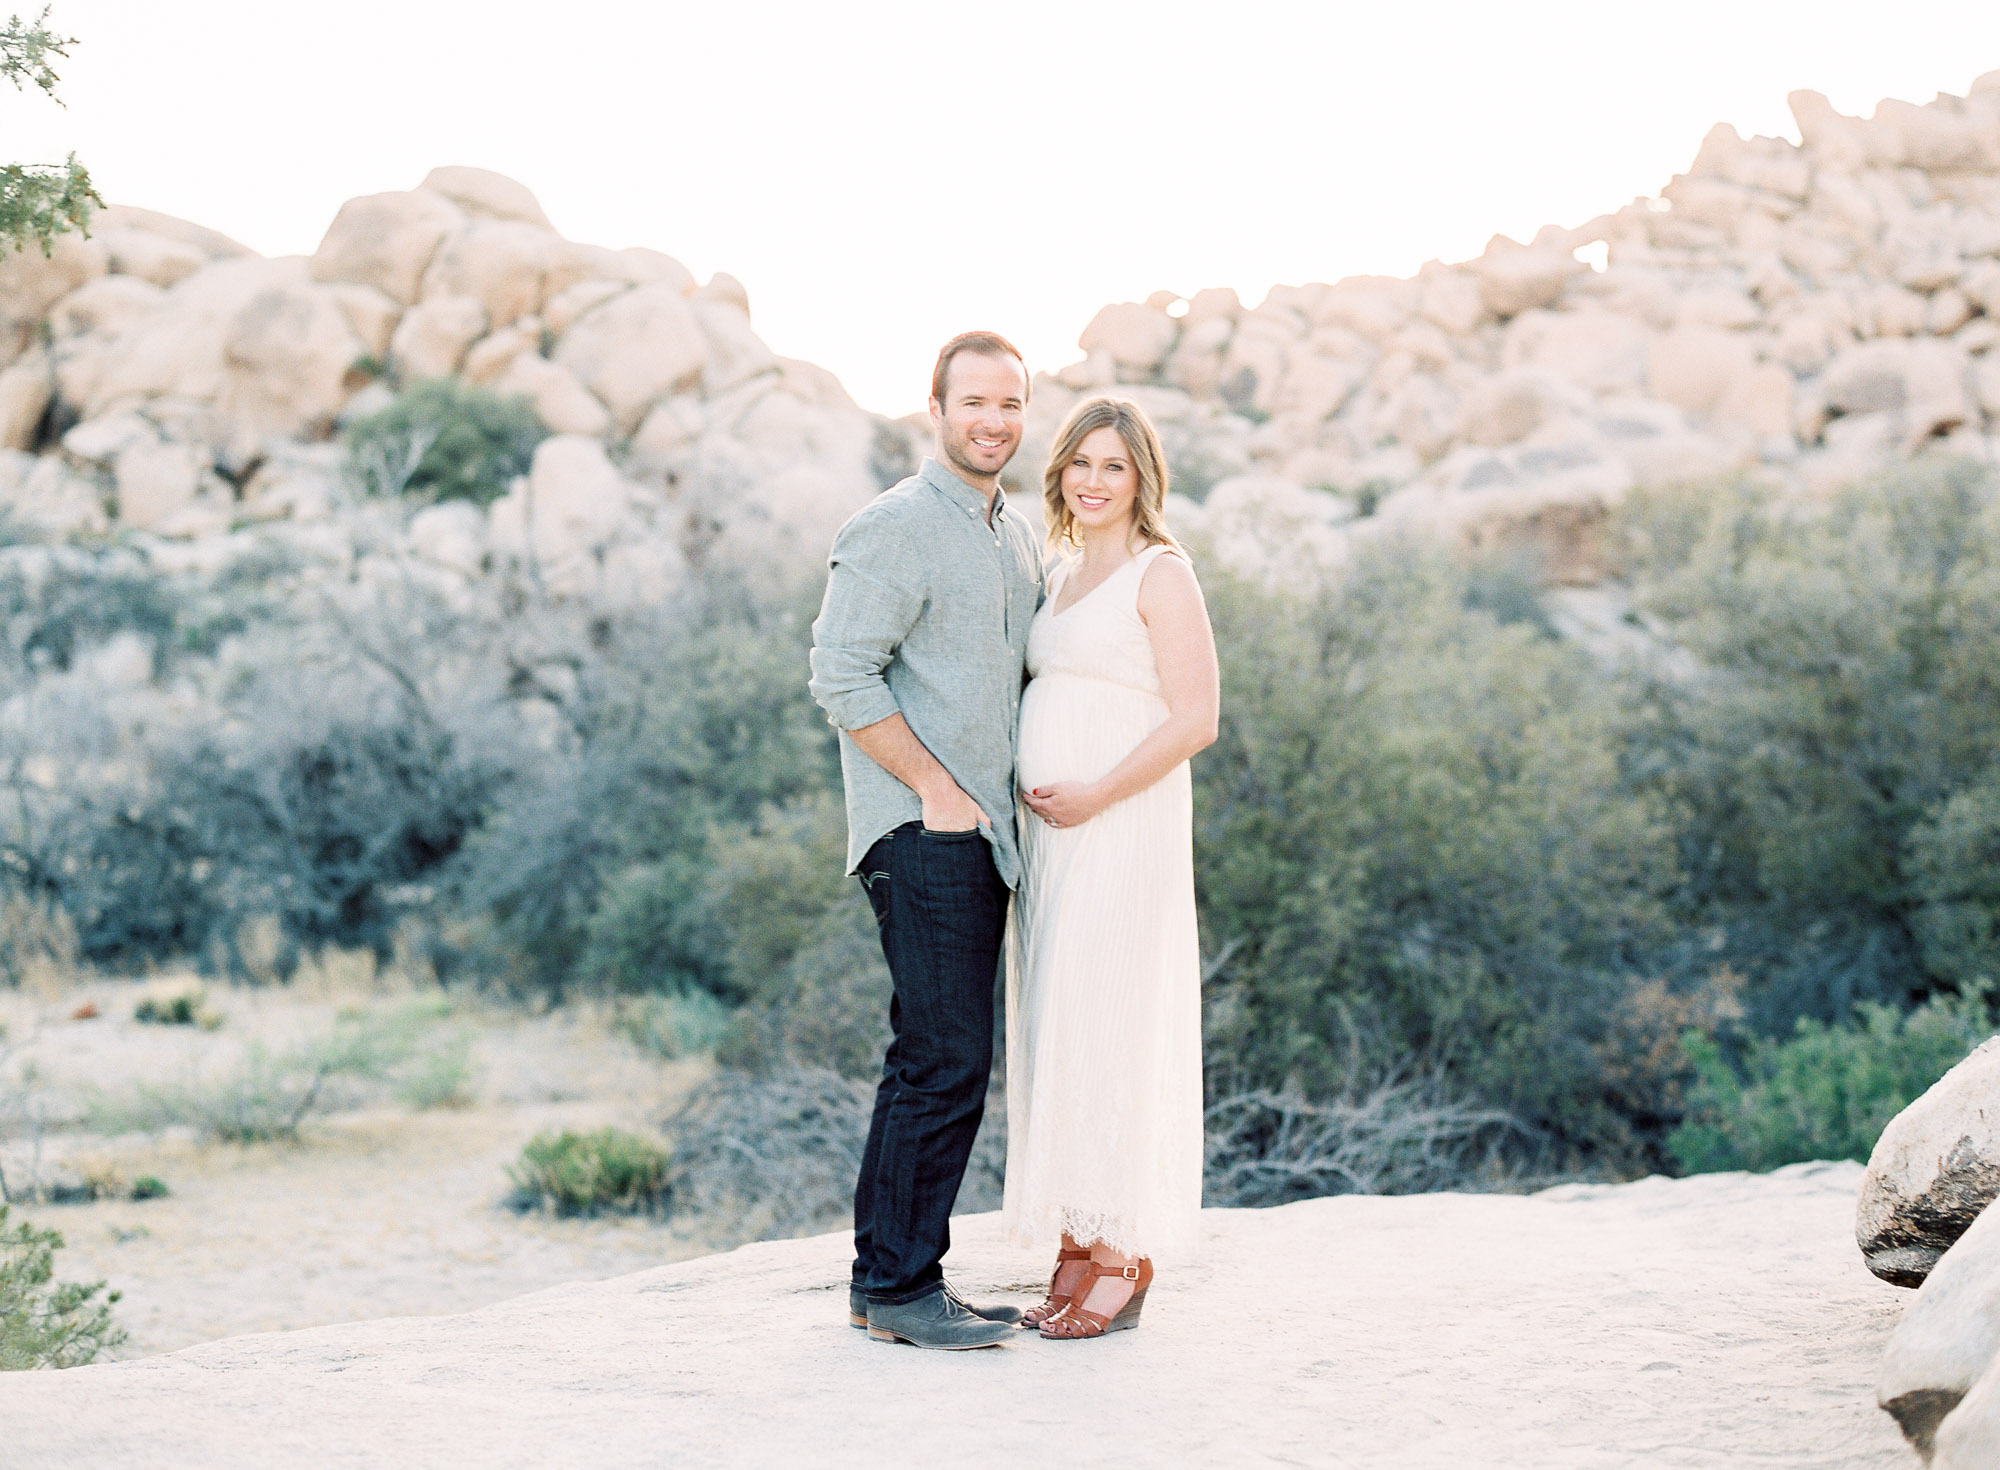 Joshua Tree Maternity Session Palm Springs-1-7.jpg